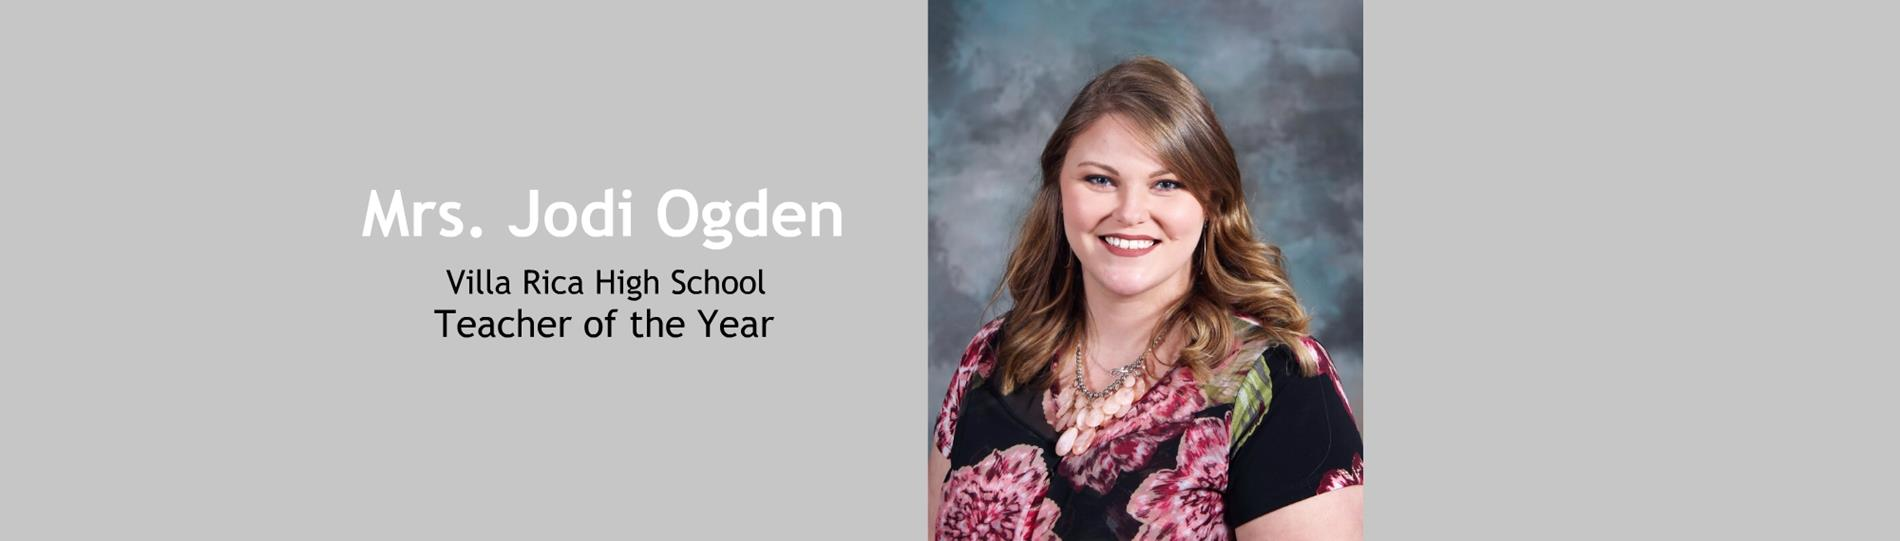 Mrs. Ogden - Teacher of the Year